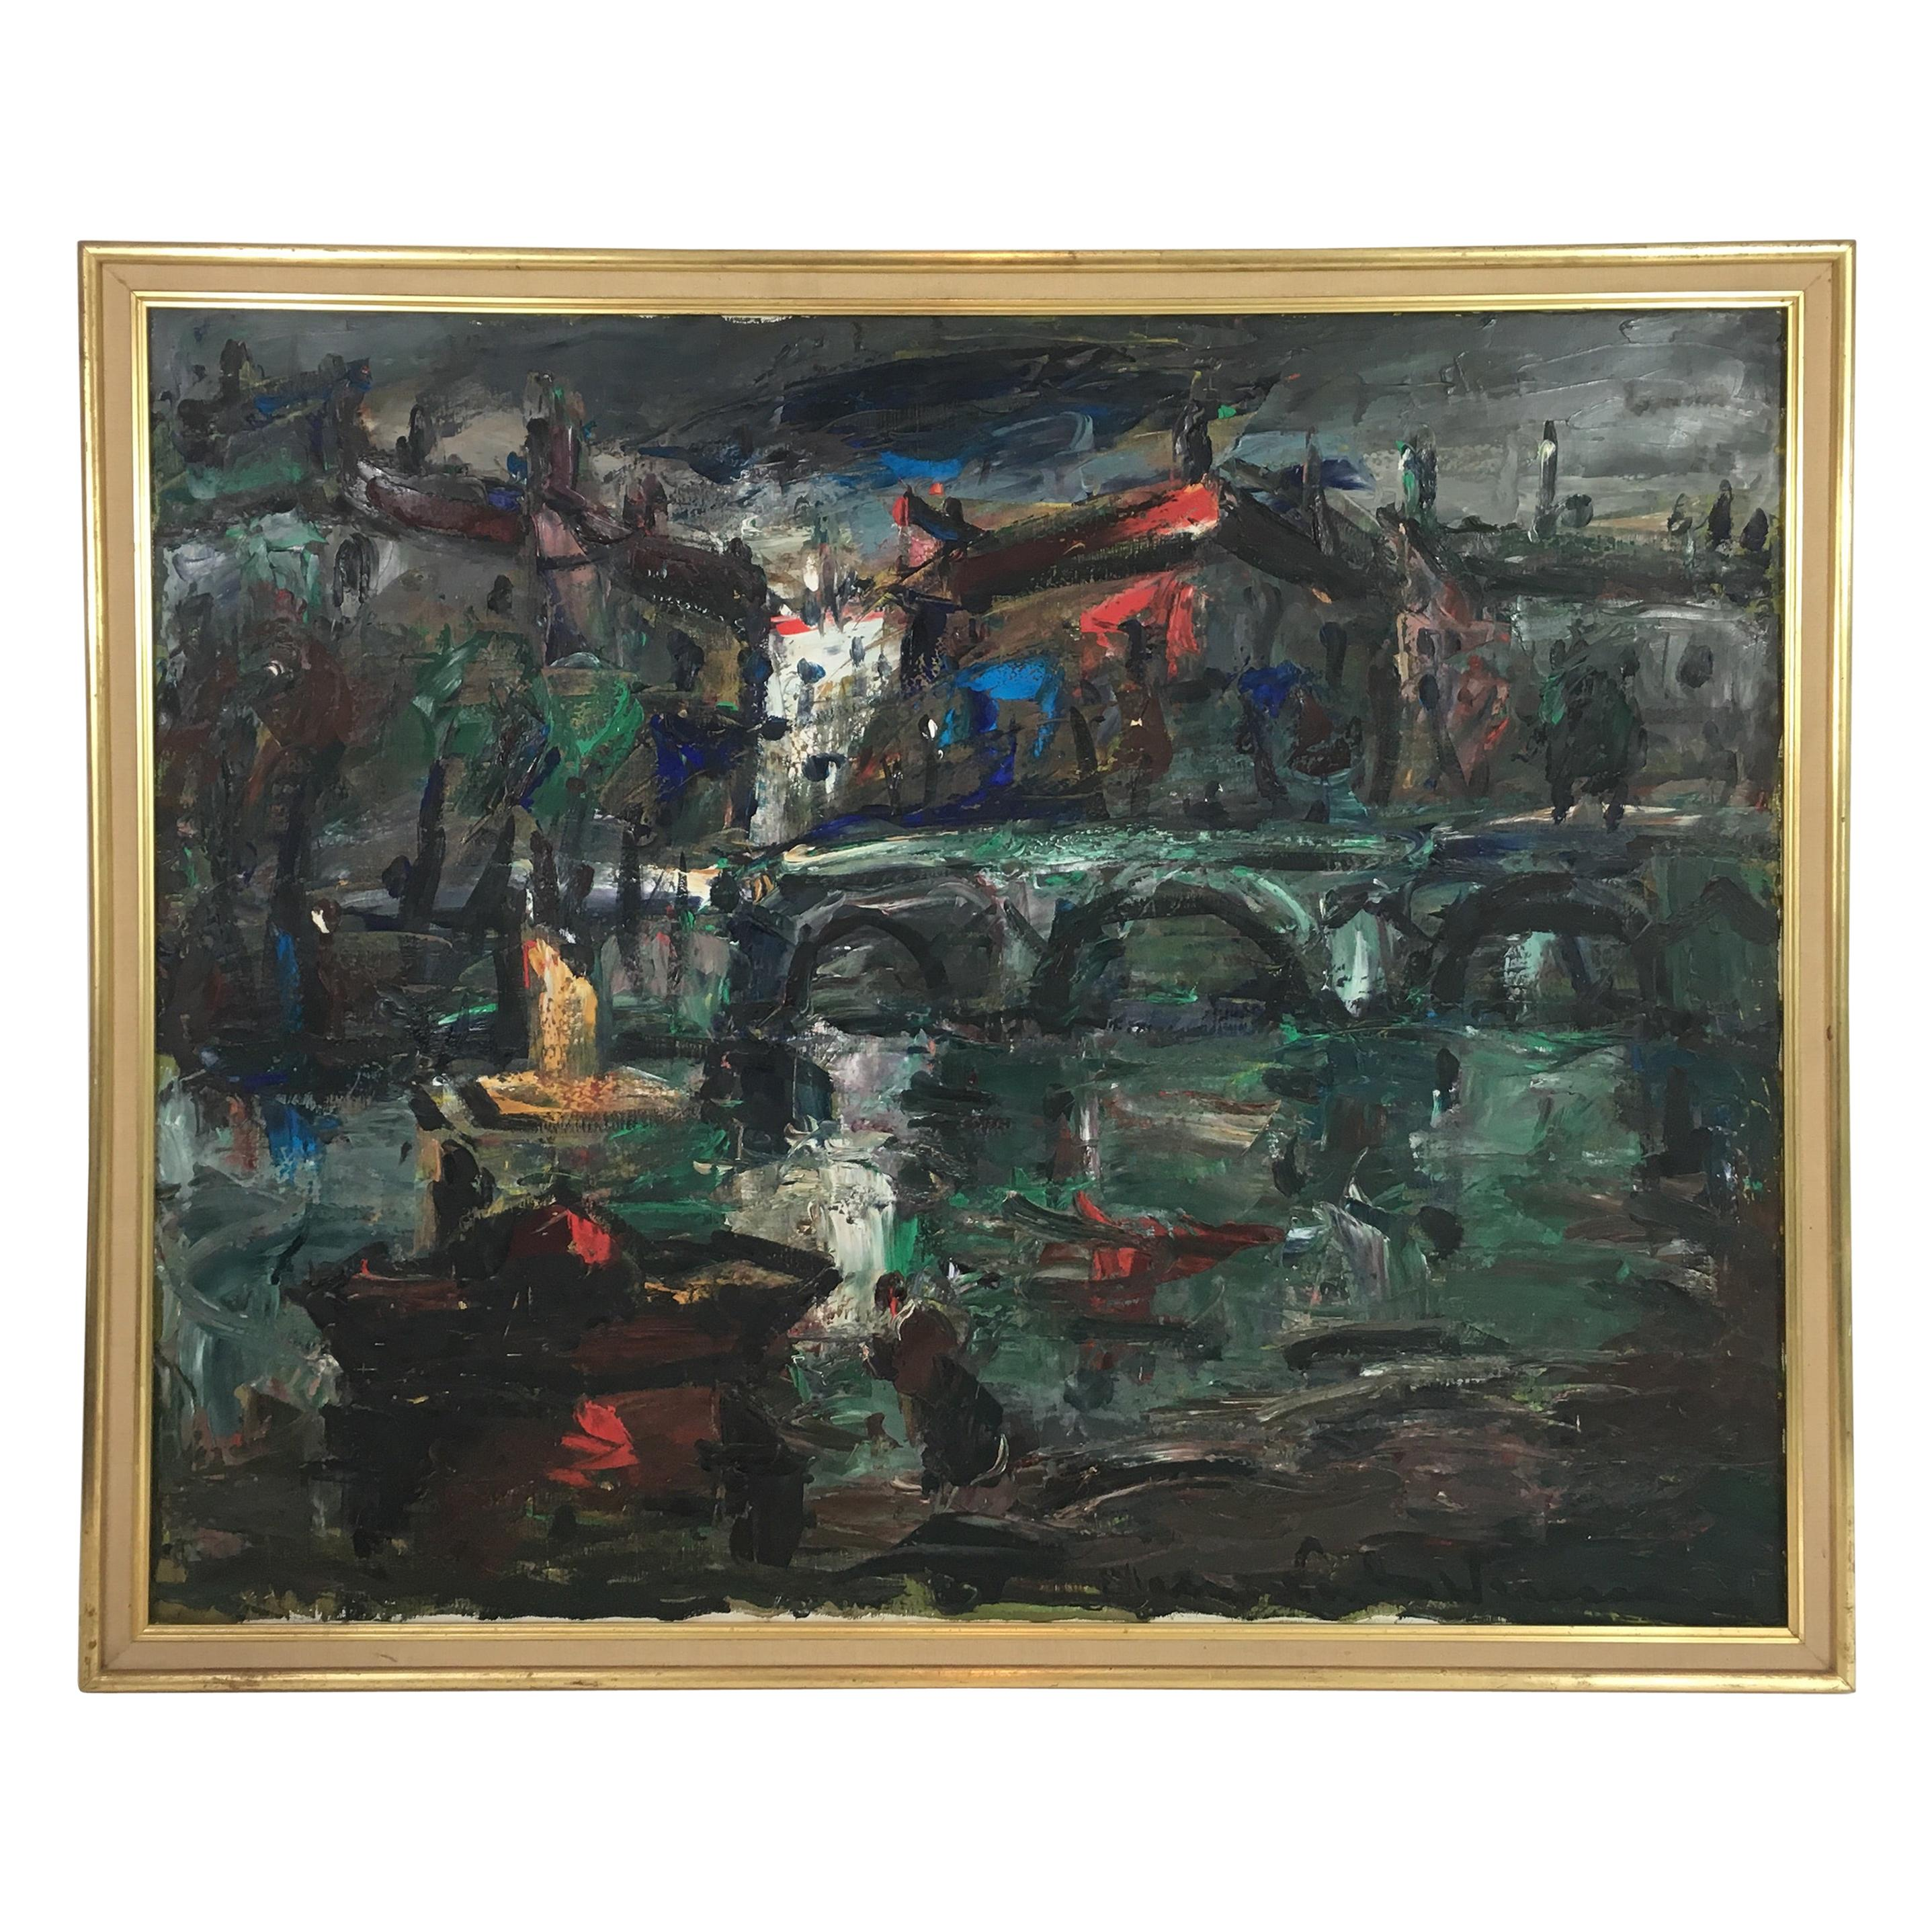 Oil on Canvas Painting, Signed, circa 1960